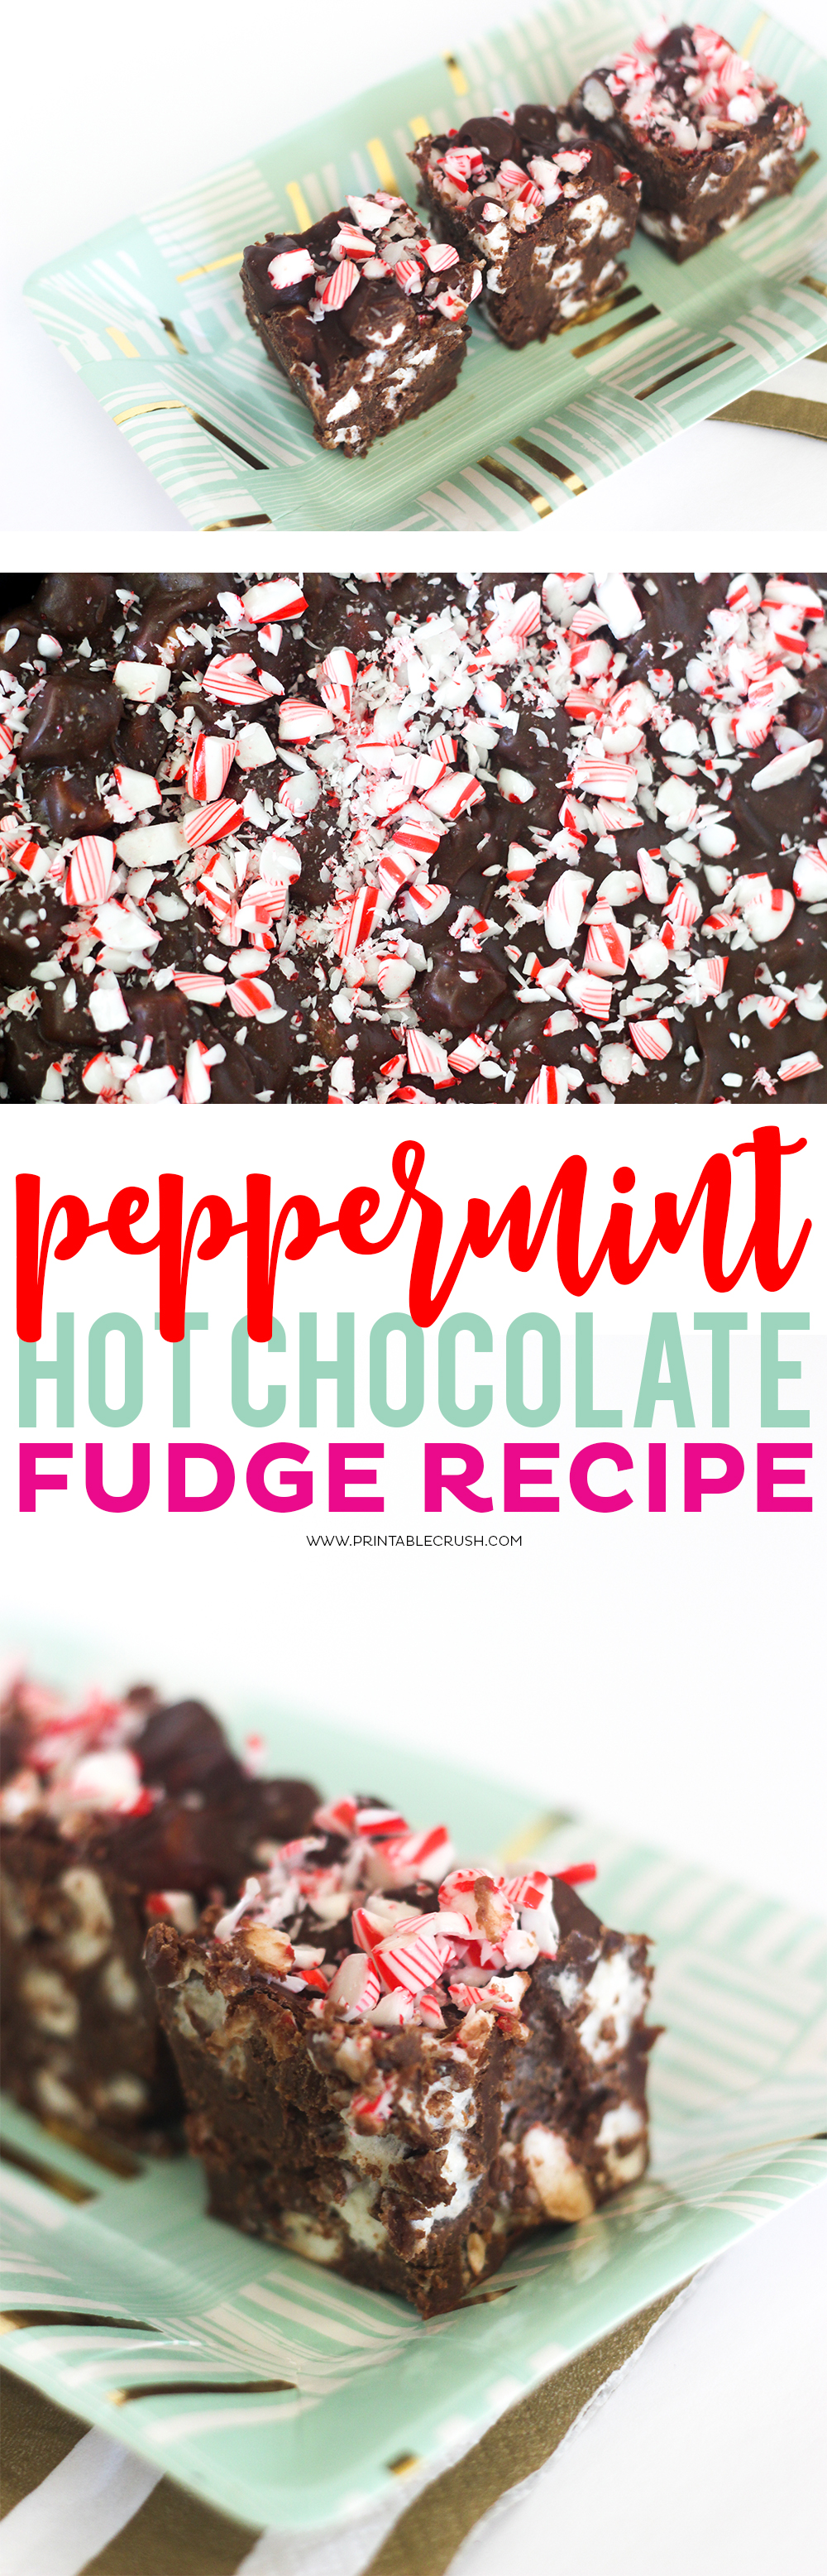 This Peppermint Hot Chocolate Fudge recipe just SCREAMS Christmas time! You'll love the rich dark chocolate fudge, tasty marshmallows, and sweet peppermint combination!